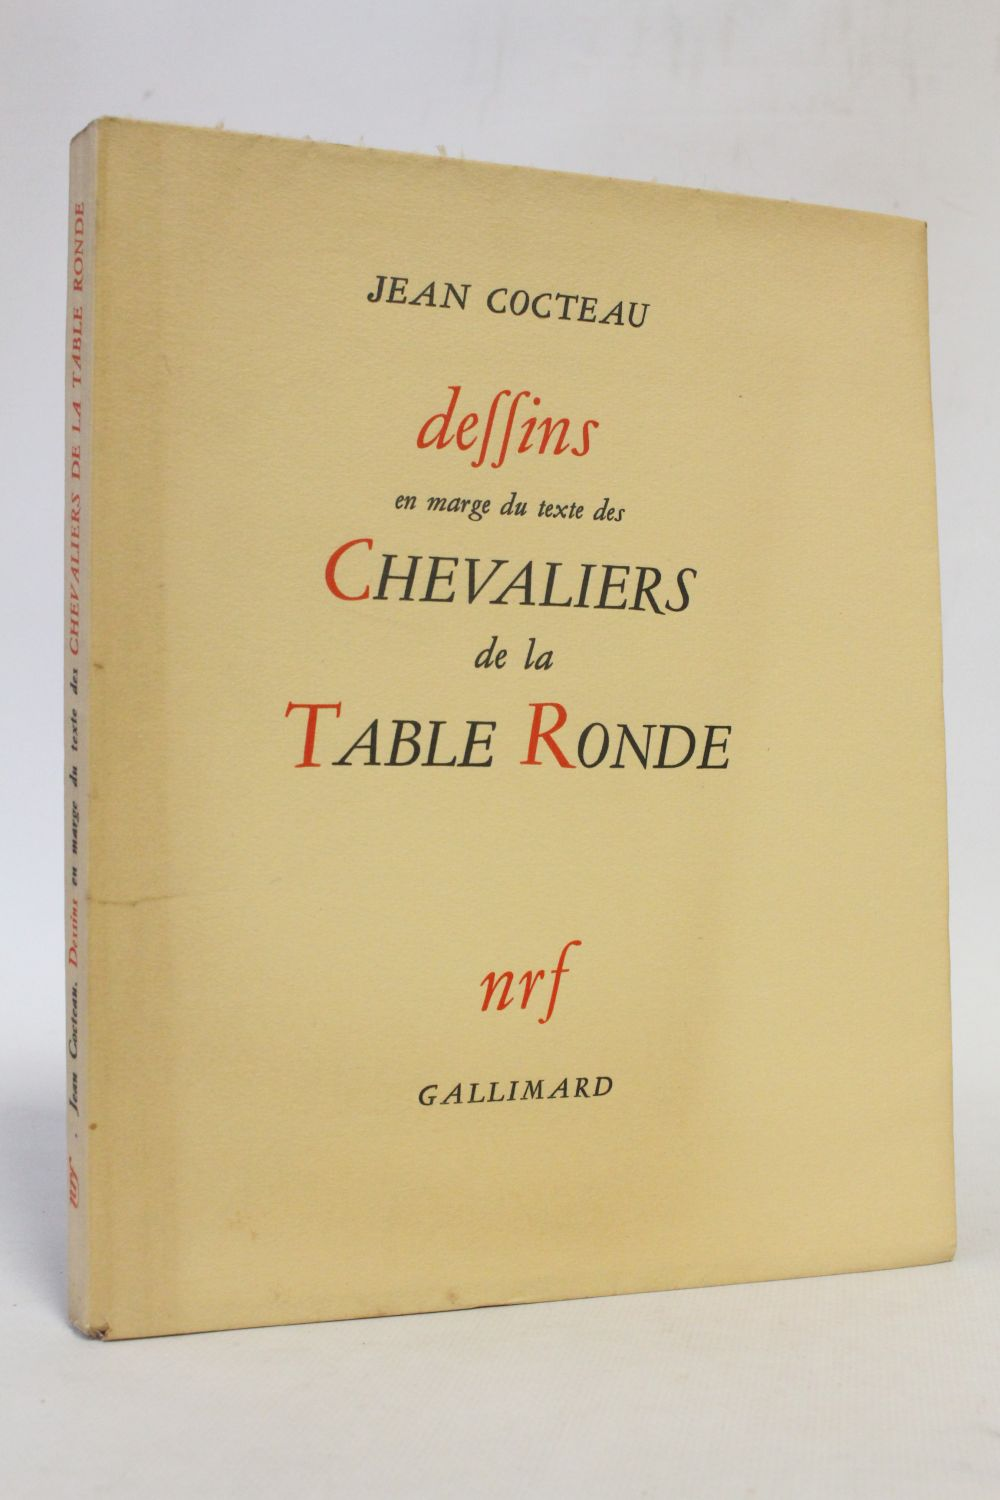 cocteau dessins en marge du texte des chevaliers de la table ronde edition originale